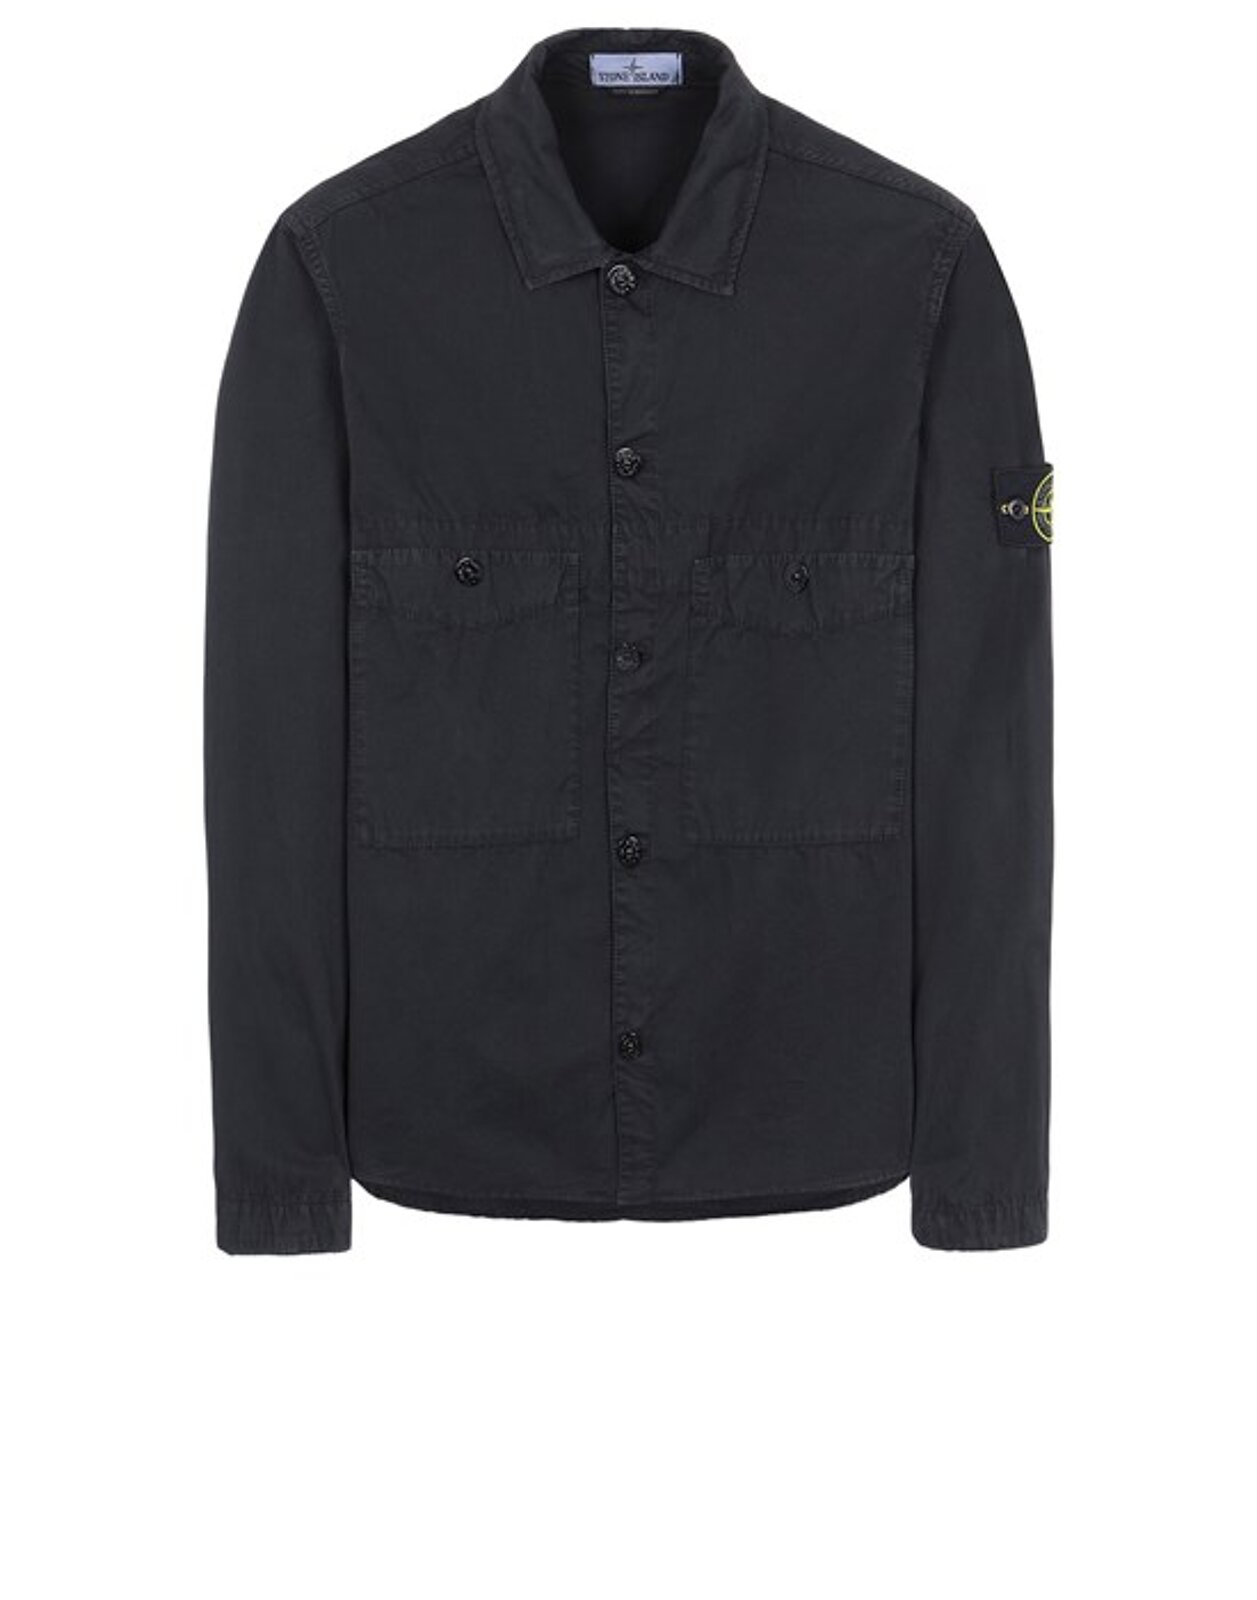 110Wn T.Co Old - Stone Island